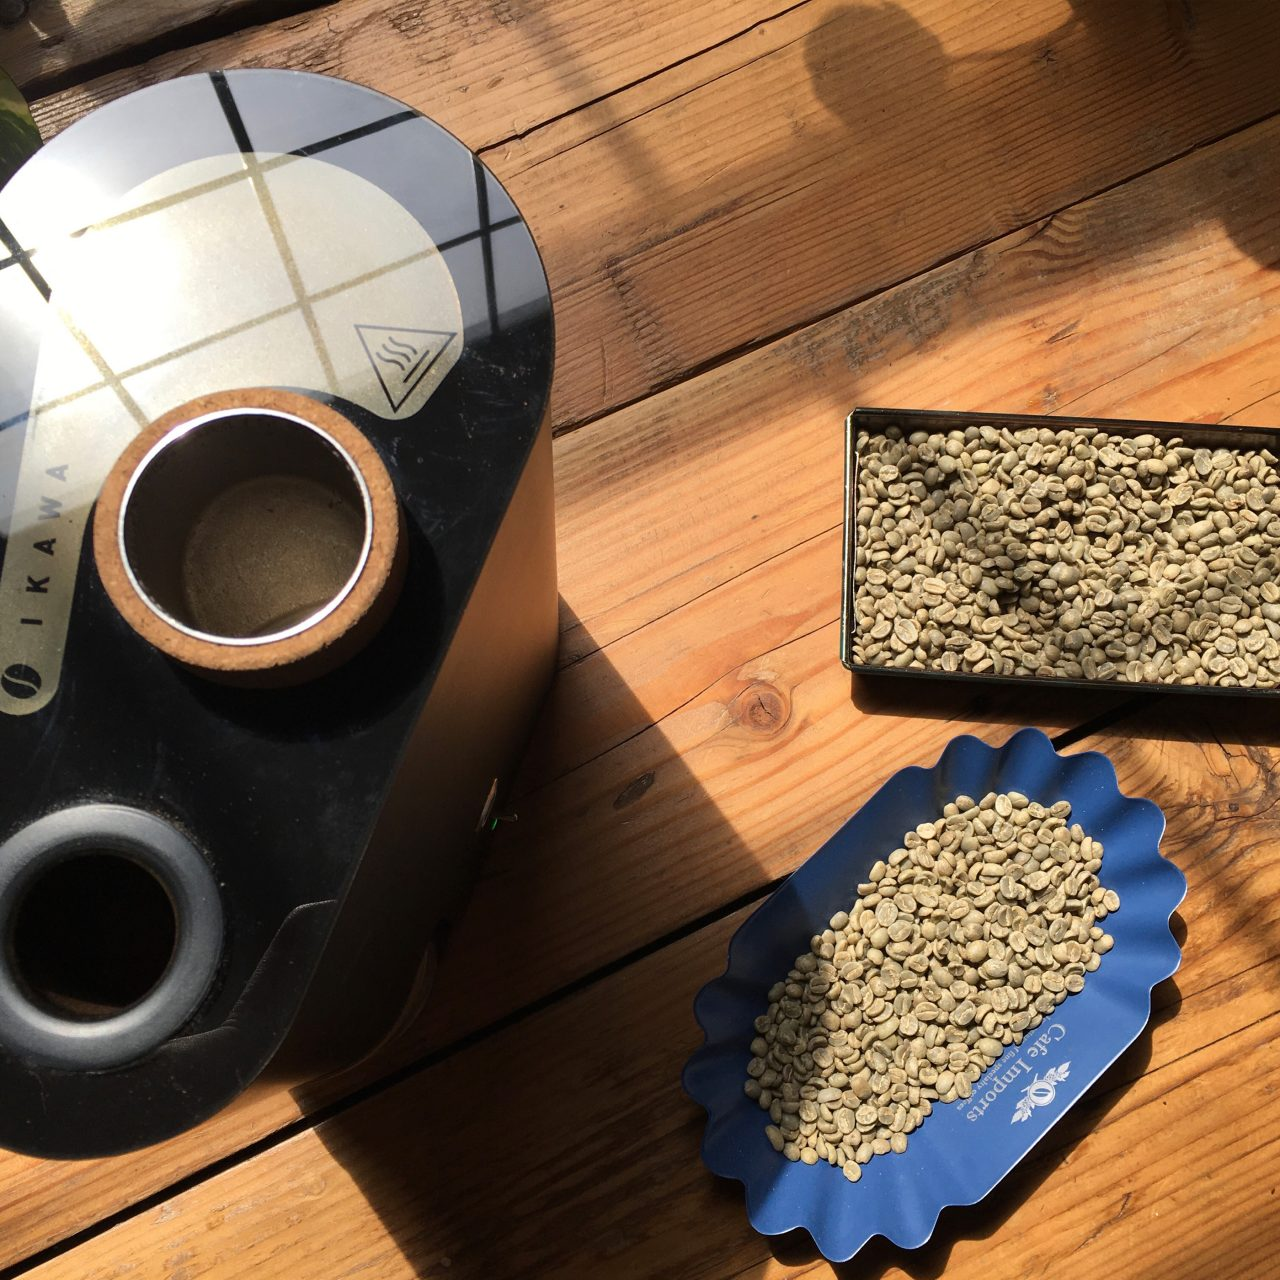 Ikawa roaster with green coffee beans